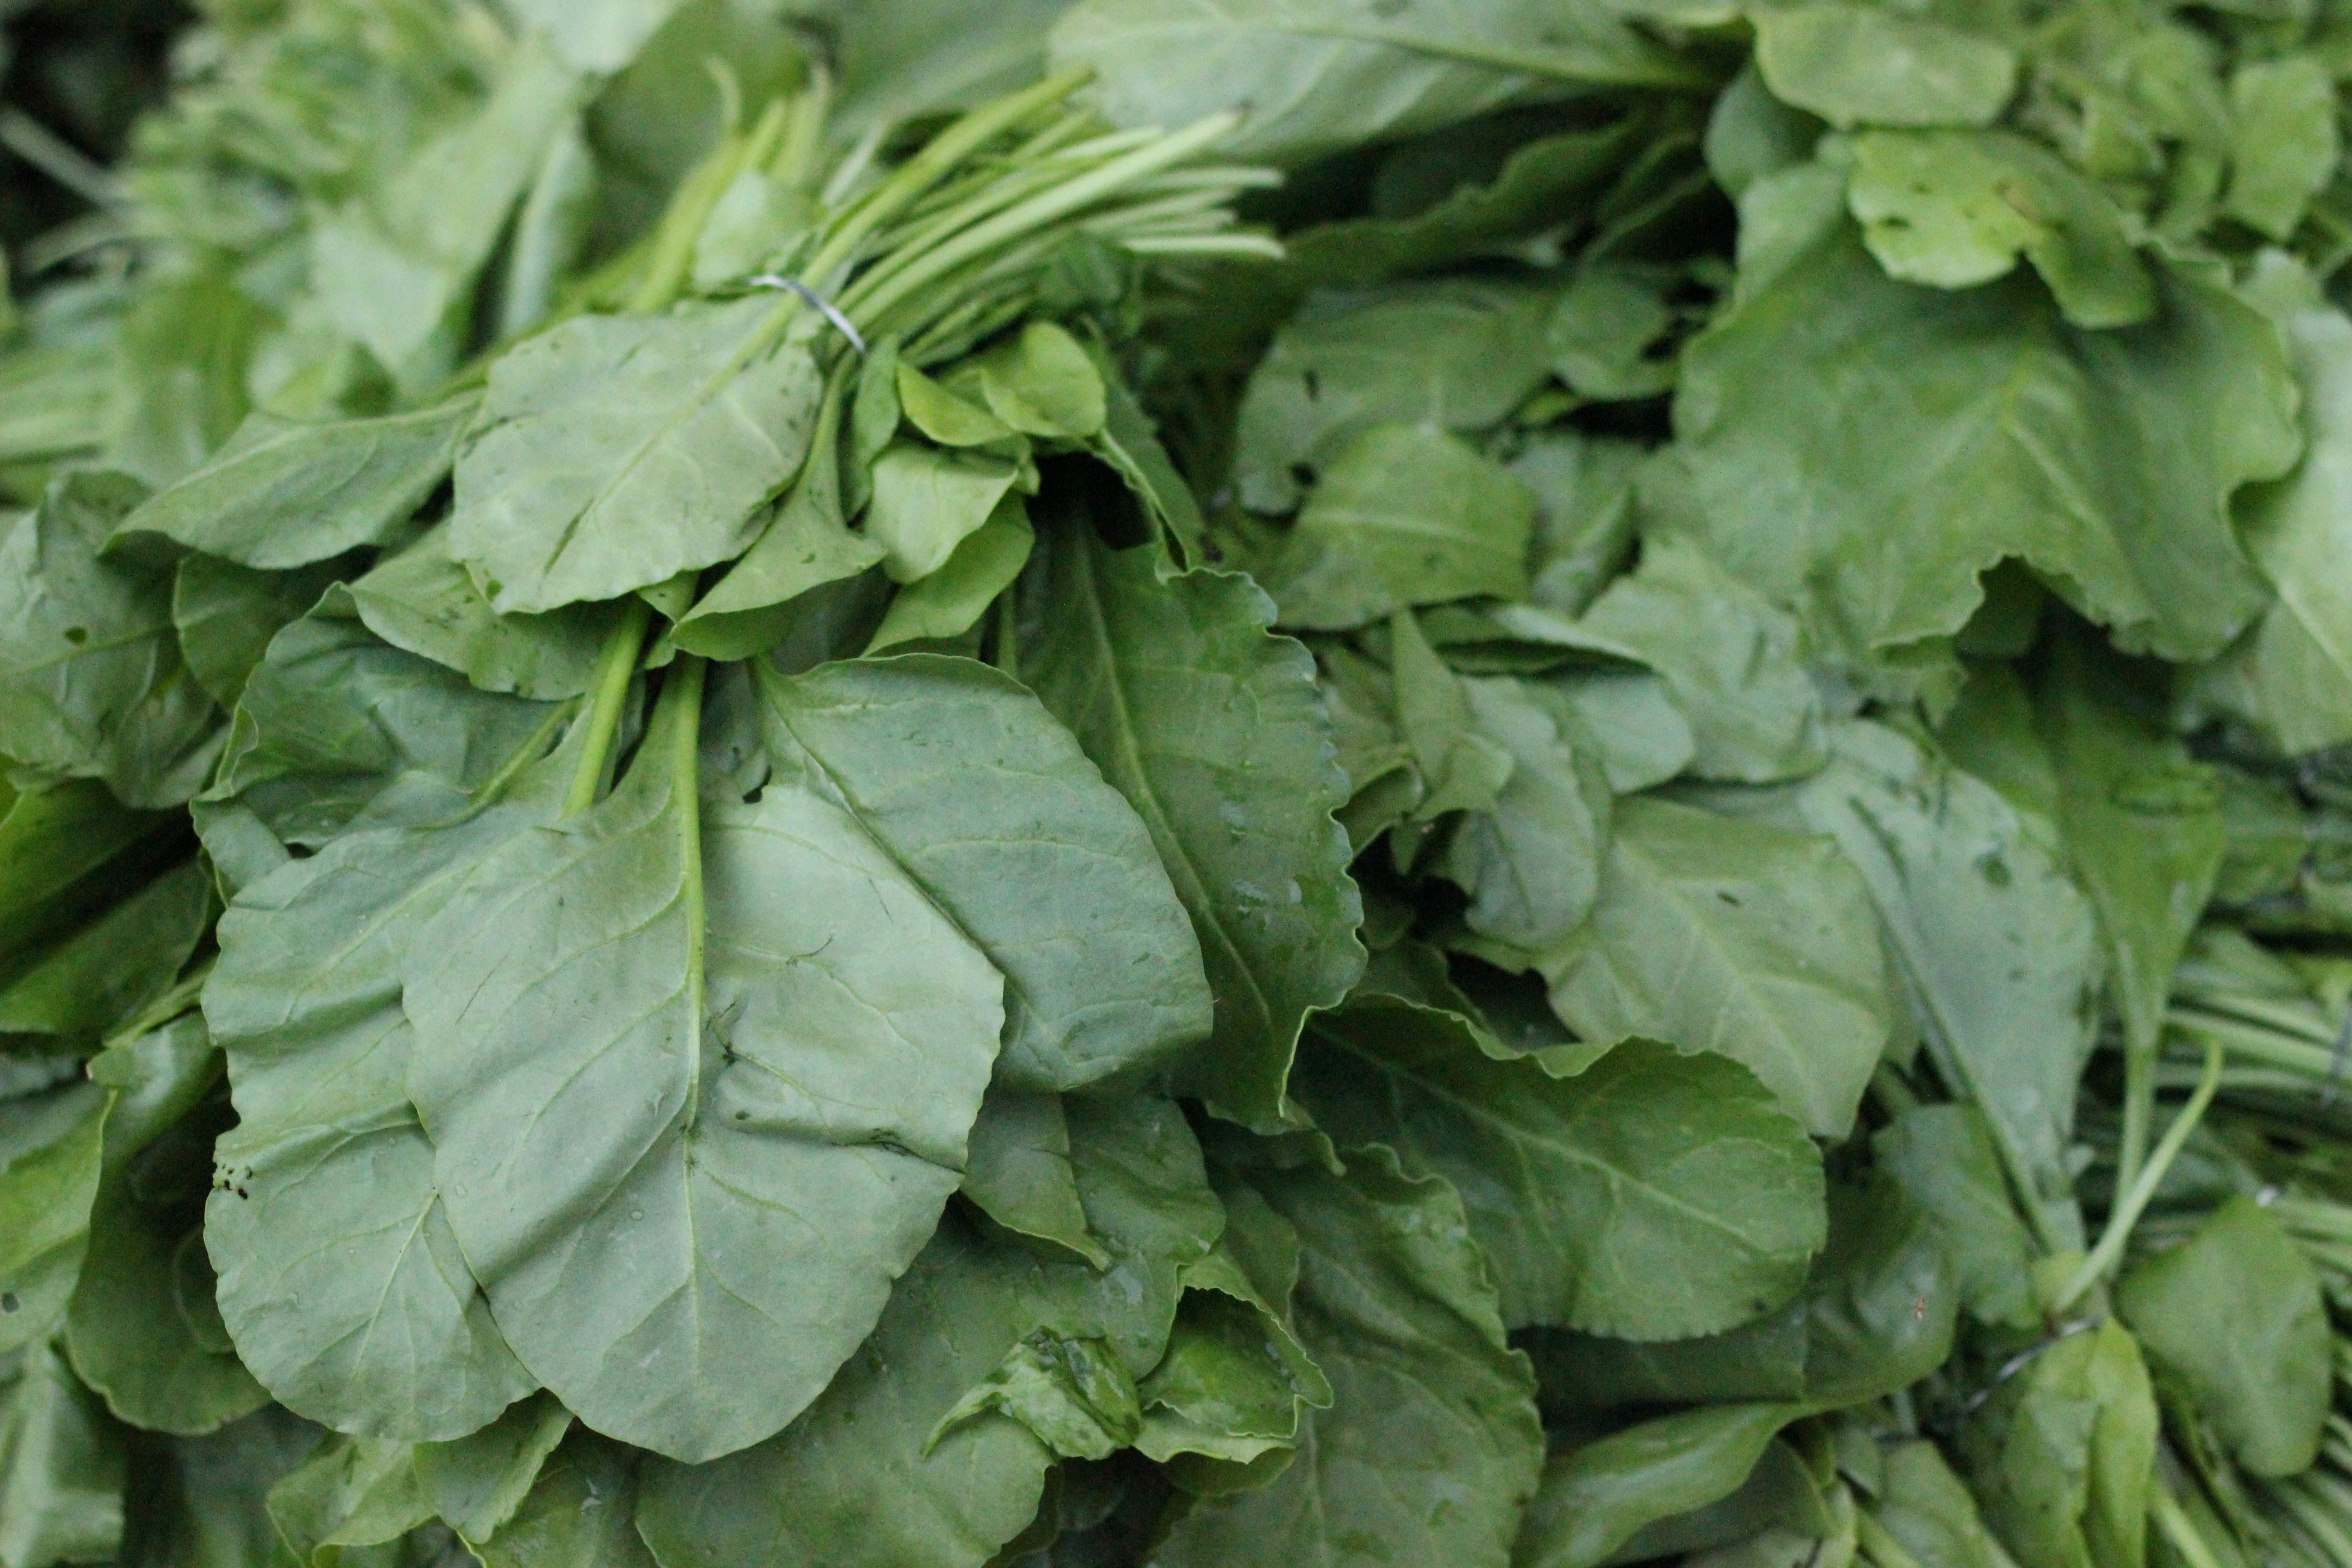 Leafy greens contain a number of beneficial nutrients.